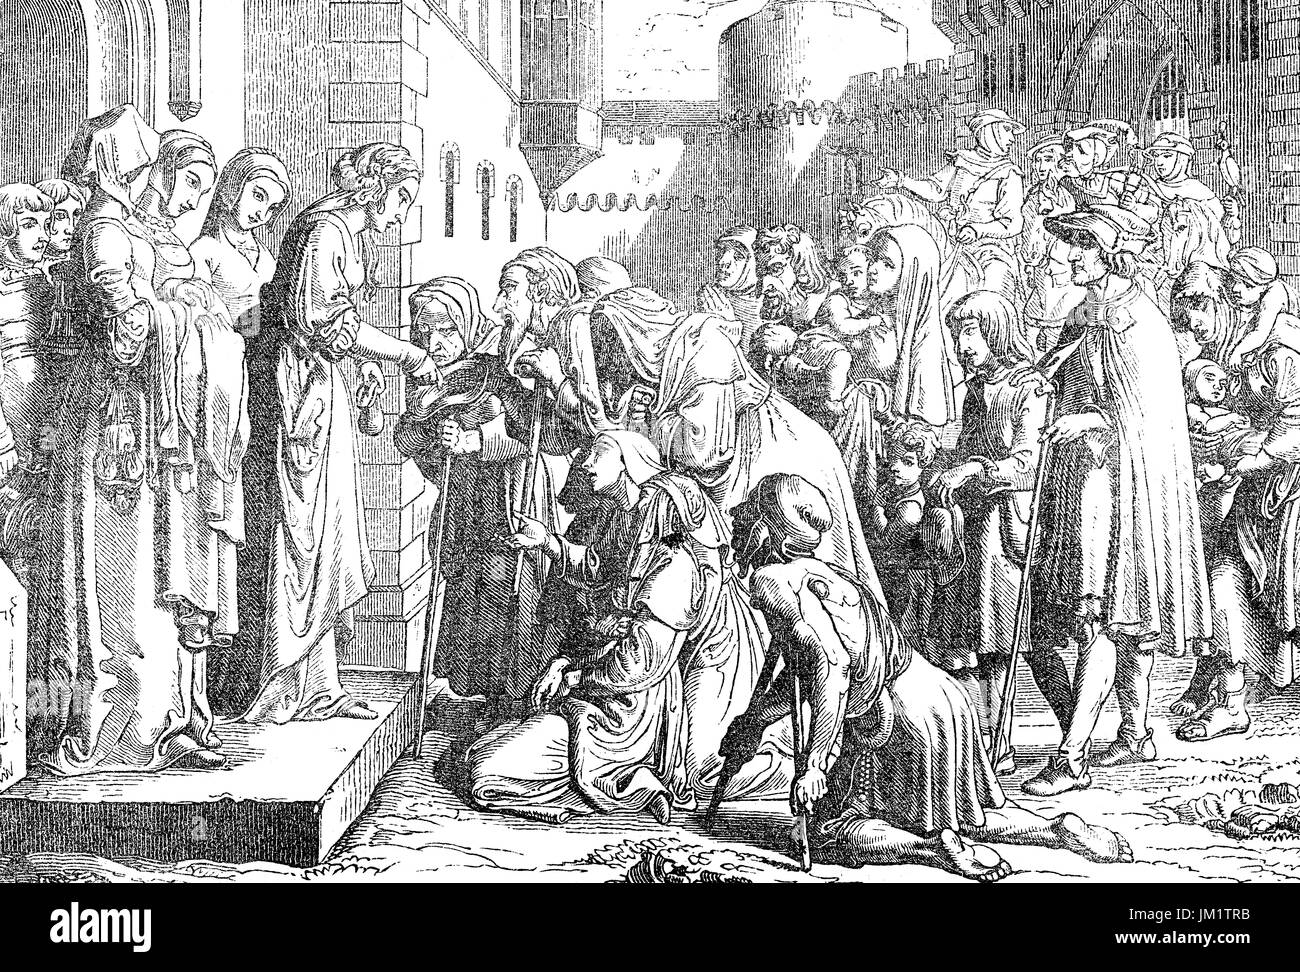 St Elizabeth or Elizabeth of Hungary; 1207 - 1231, helping the poor - Stock Image